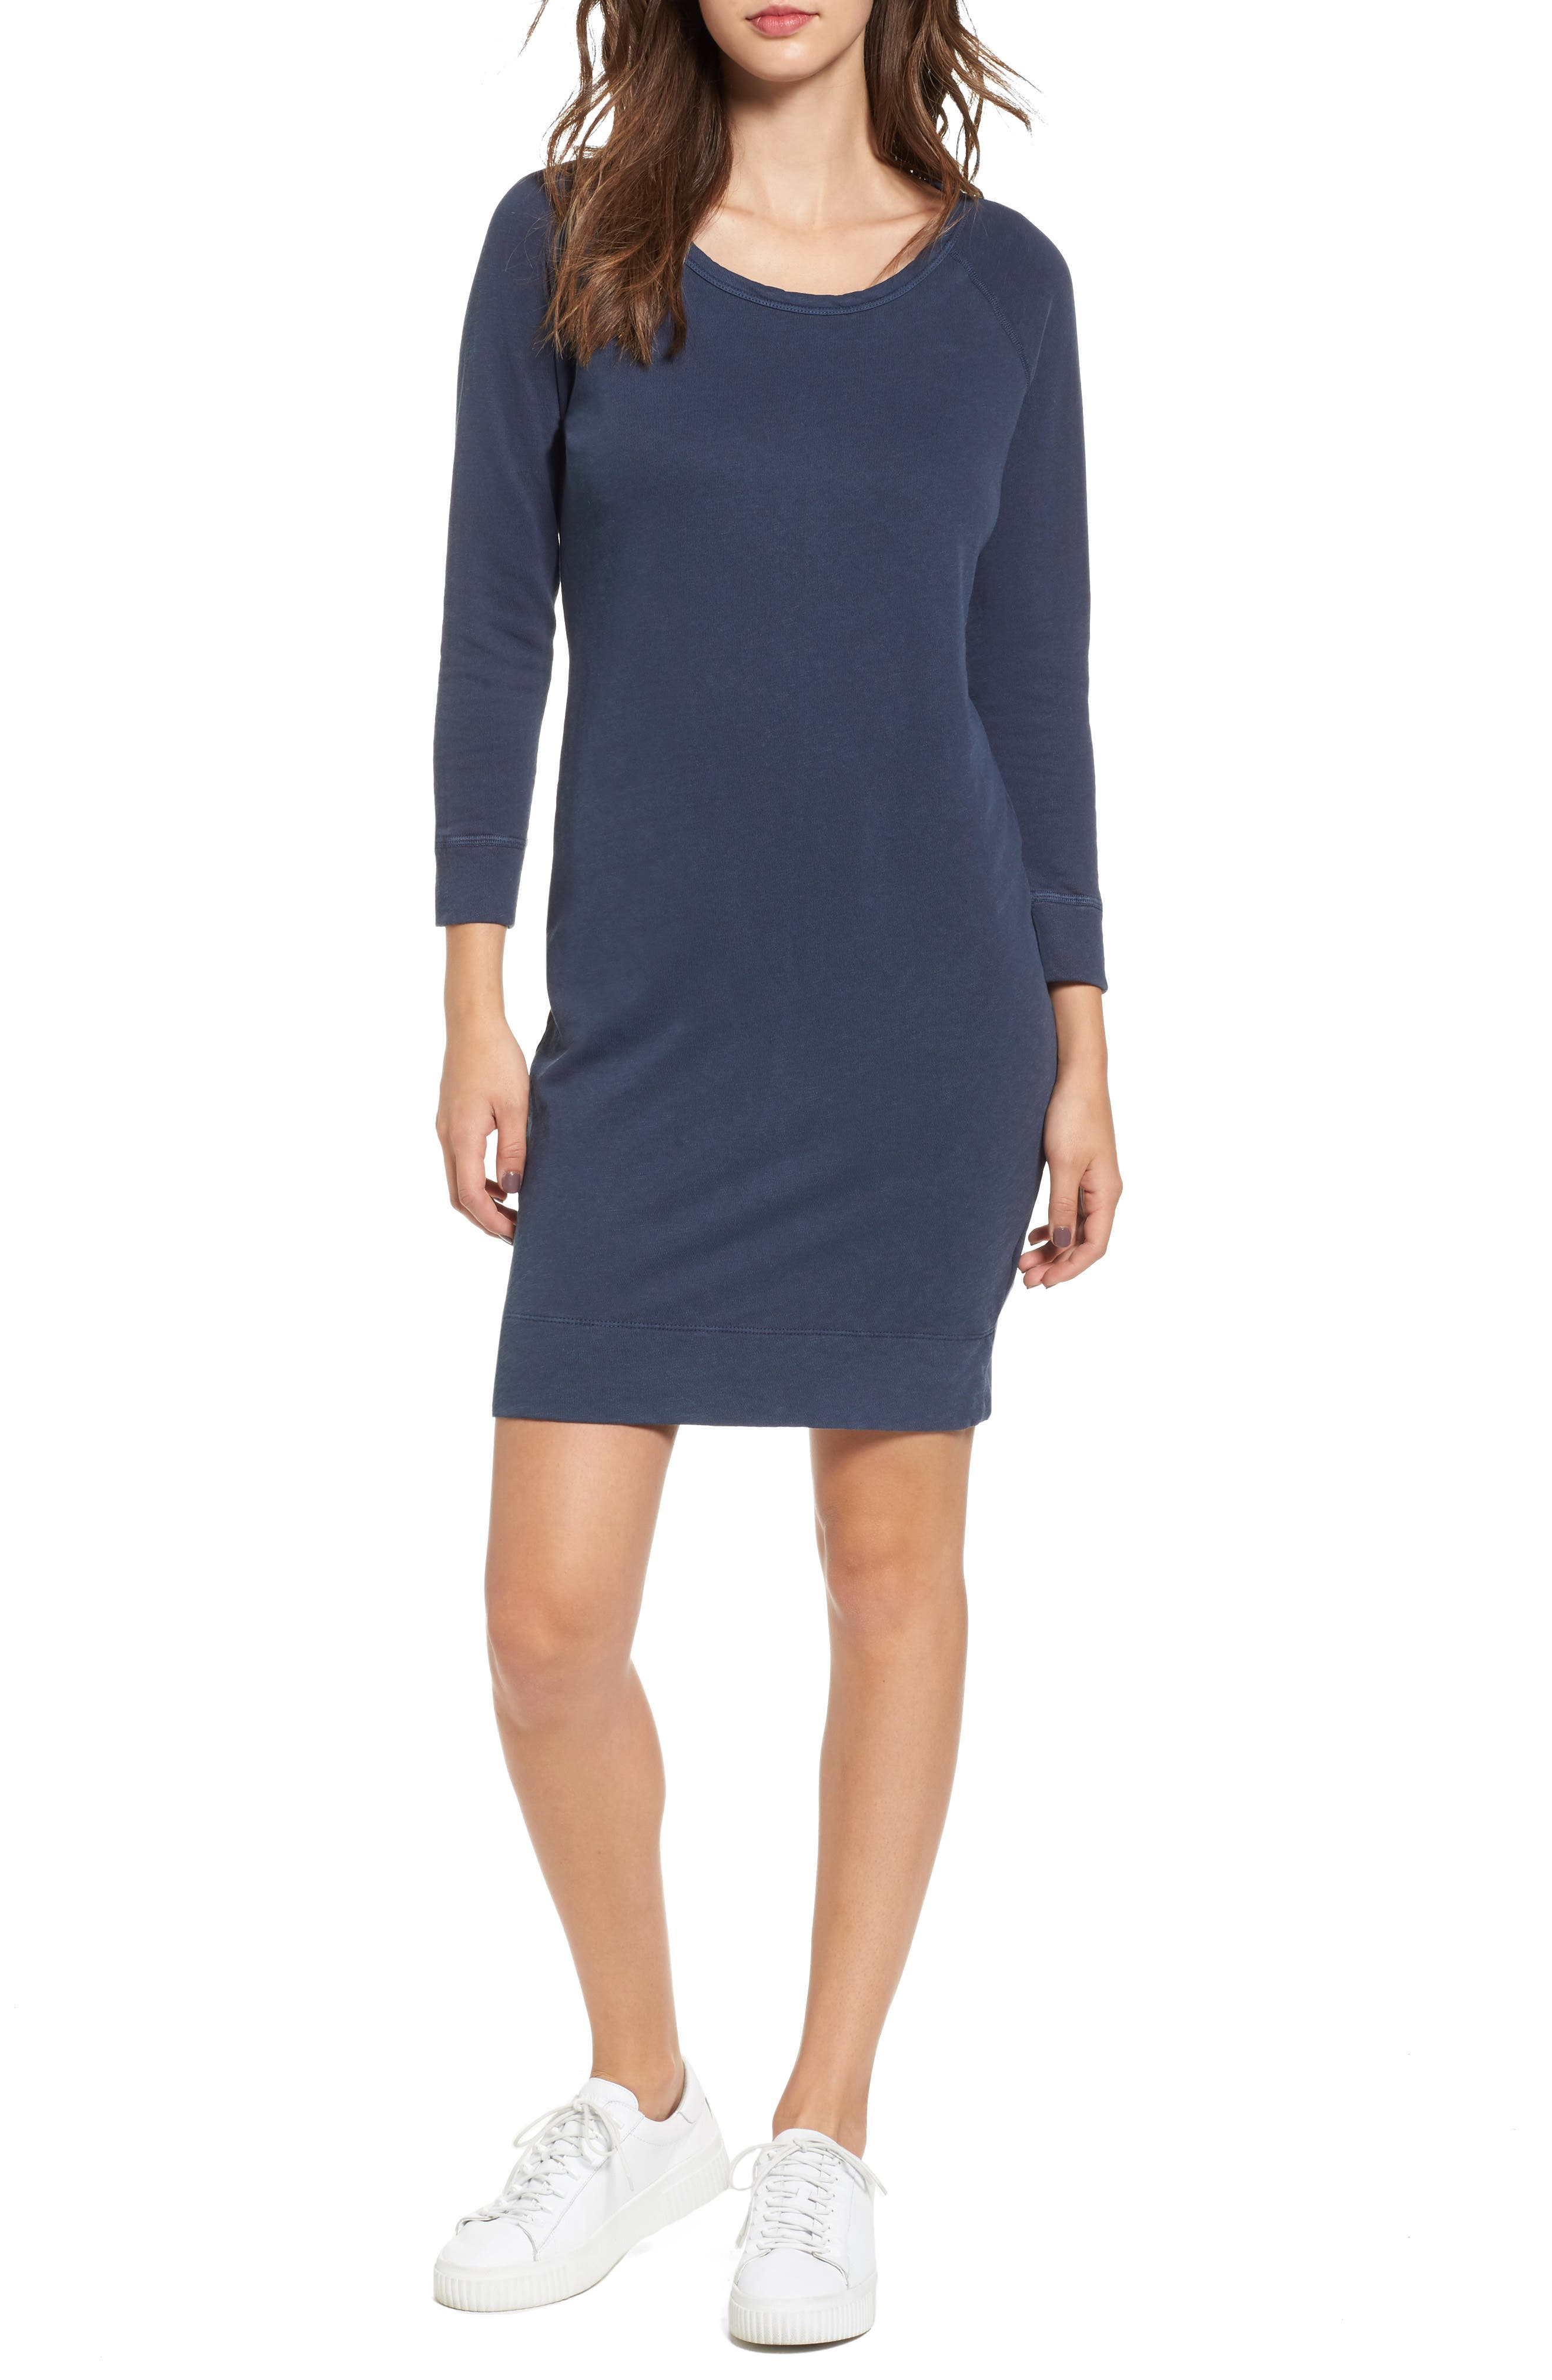 JAMES PERSE Raglan Sleeve Sweatshirt Dress